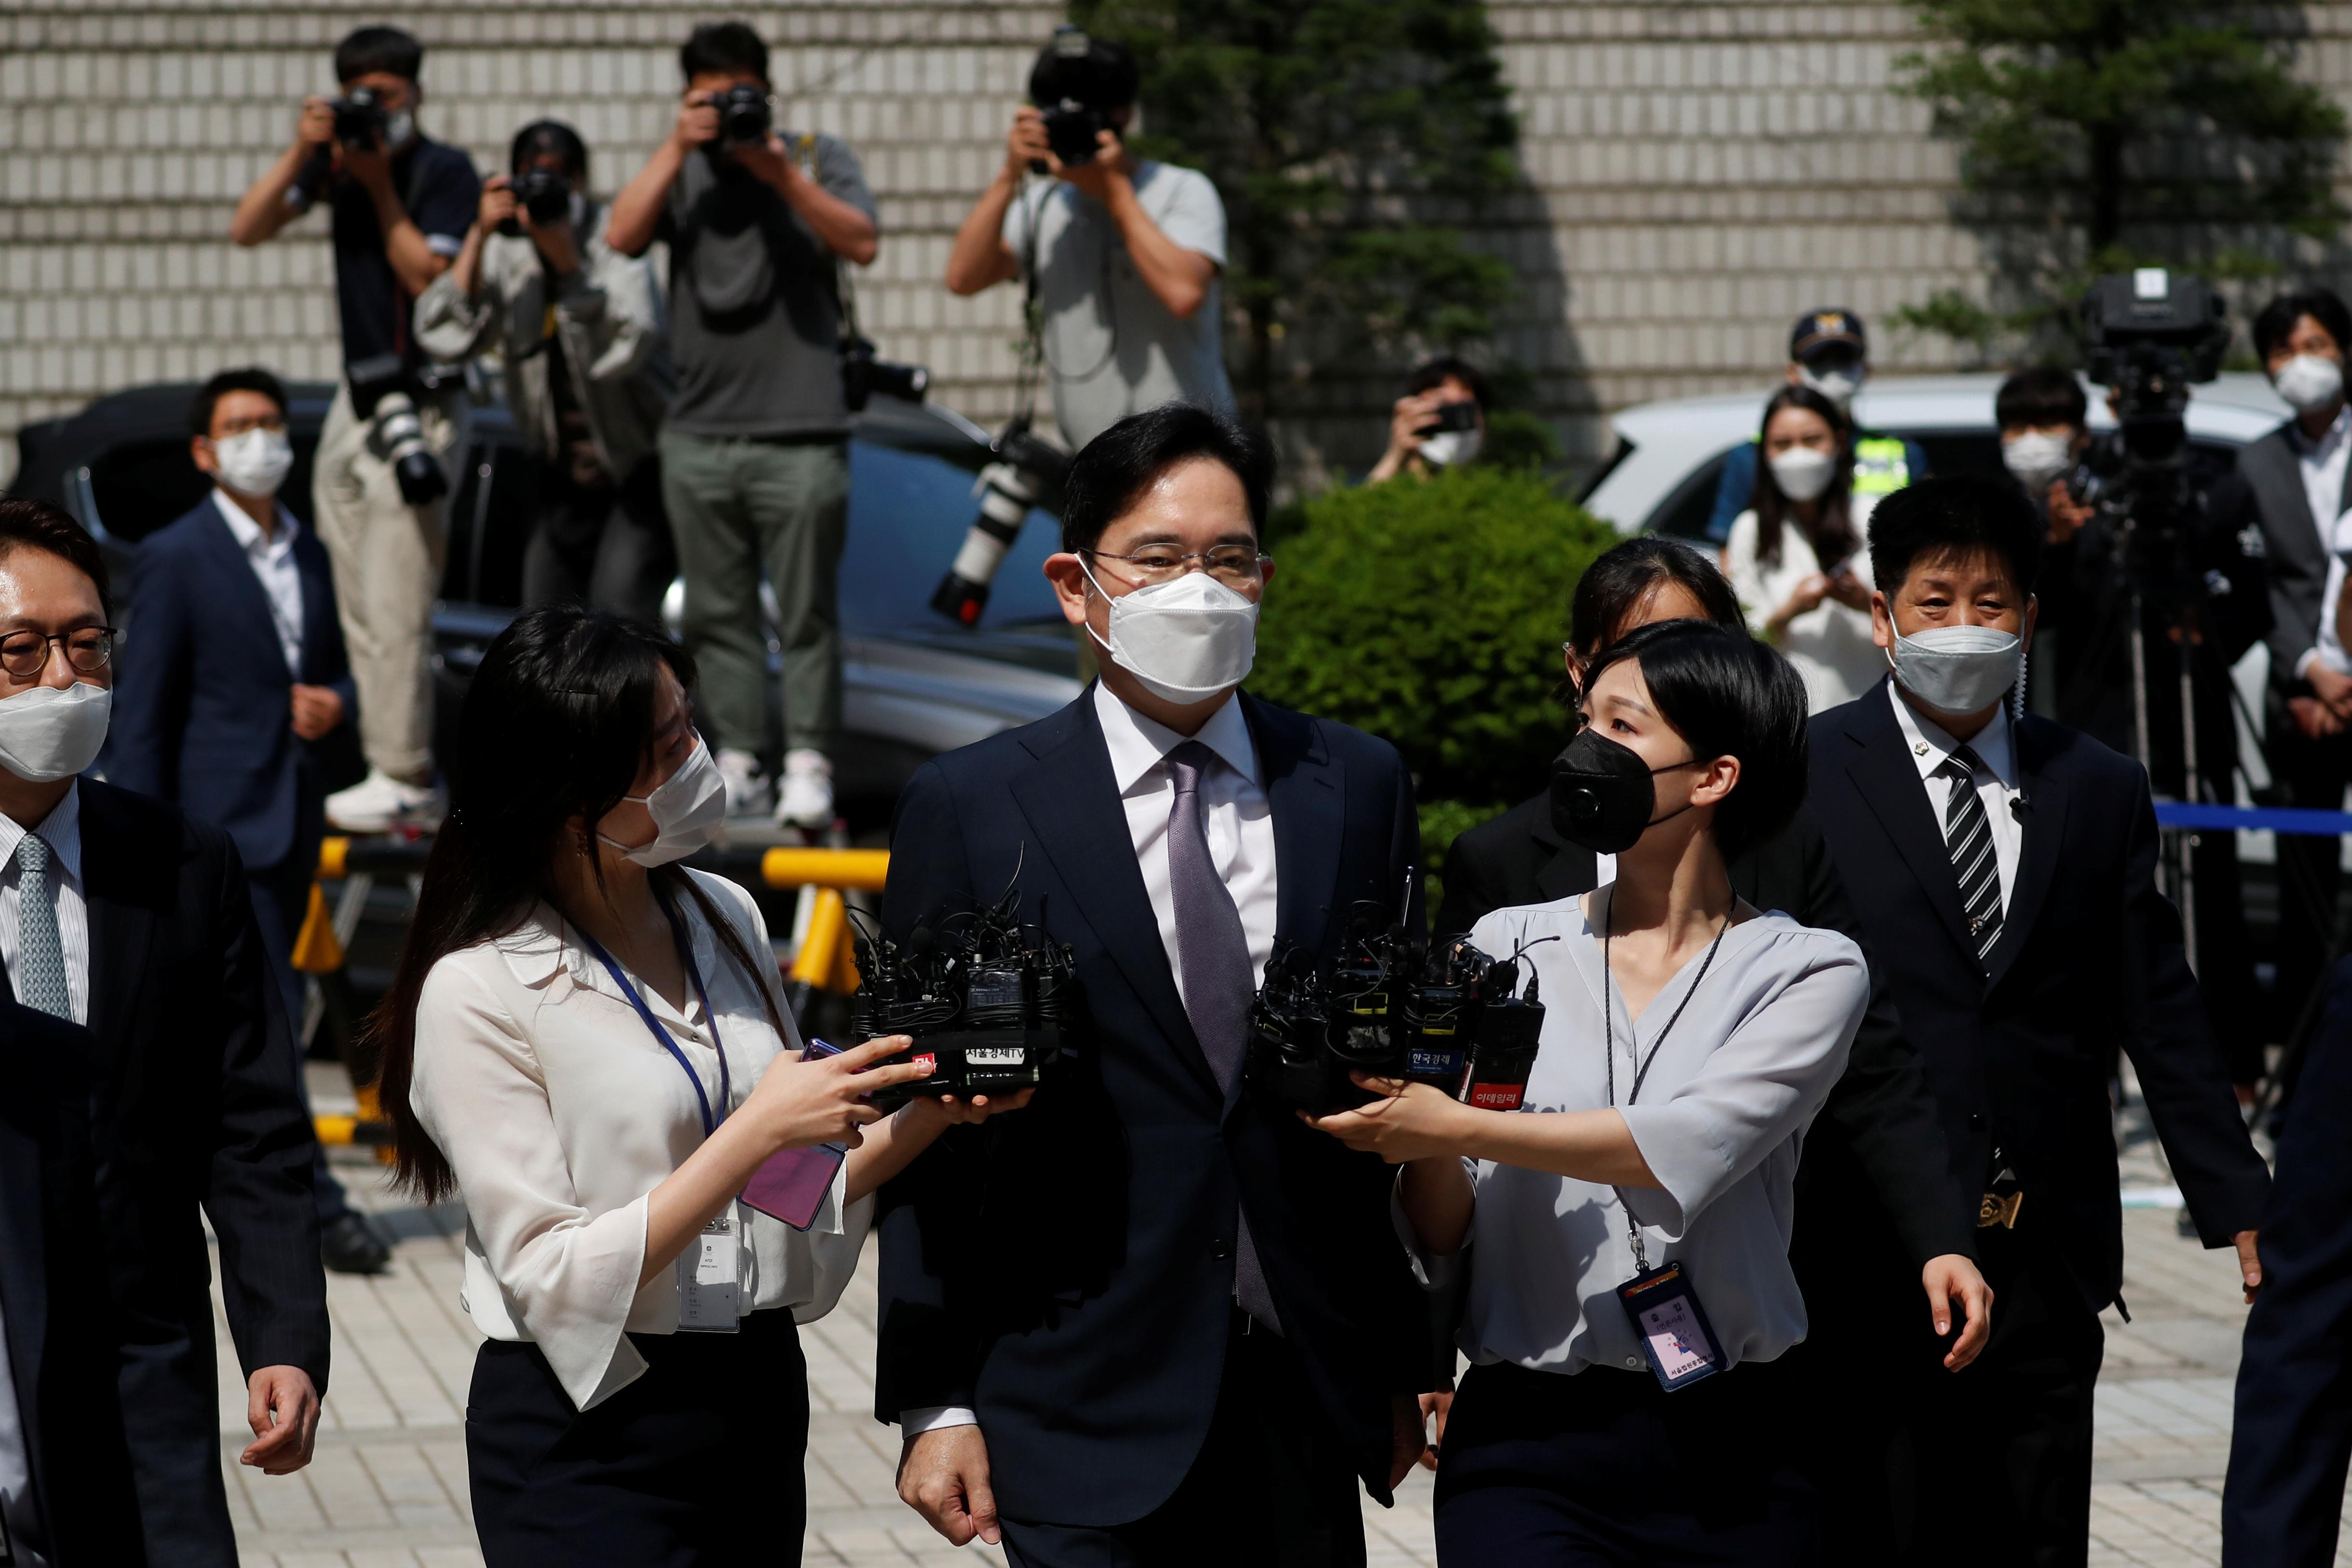 Samsung leader appears in court, waits to hear if he'll be jailed again 2